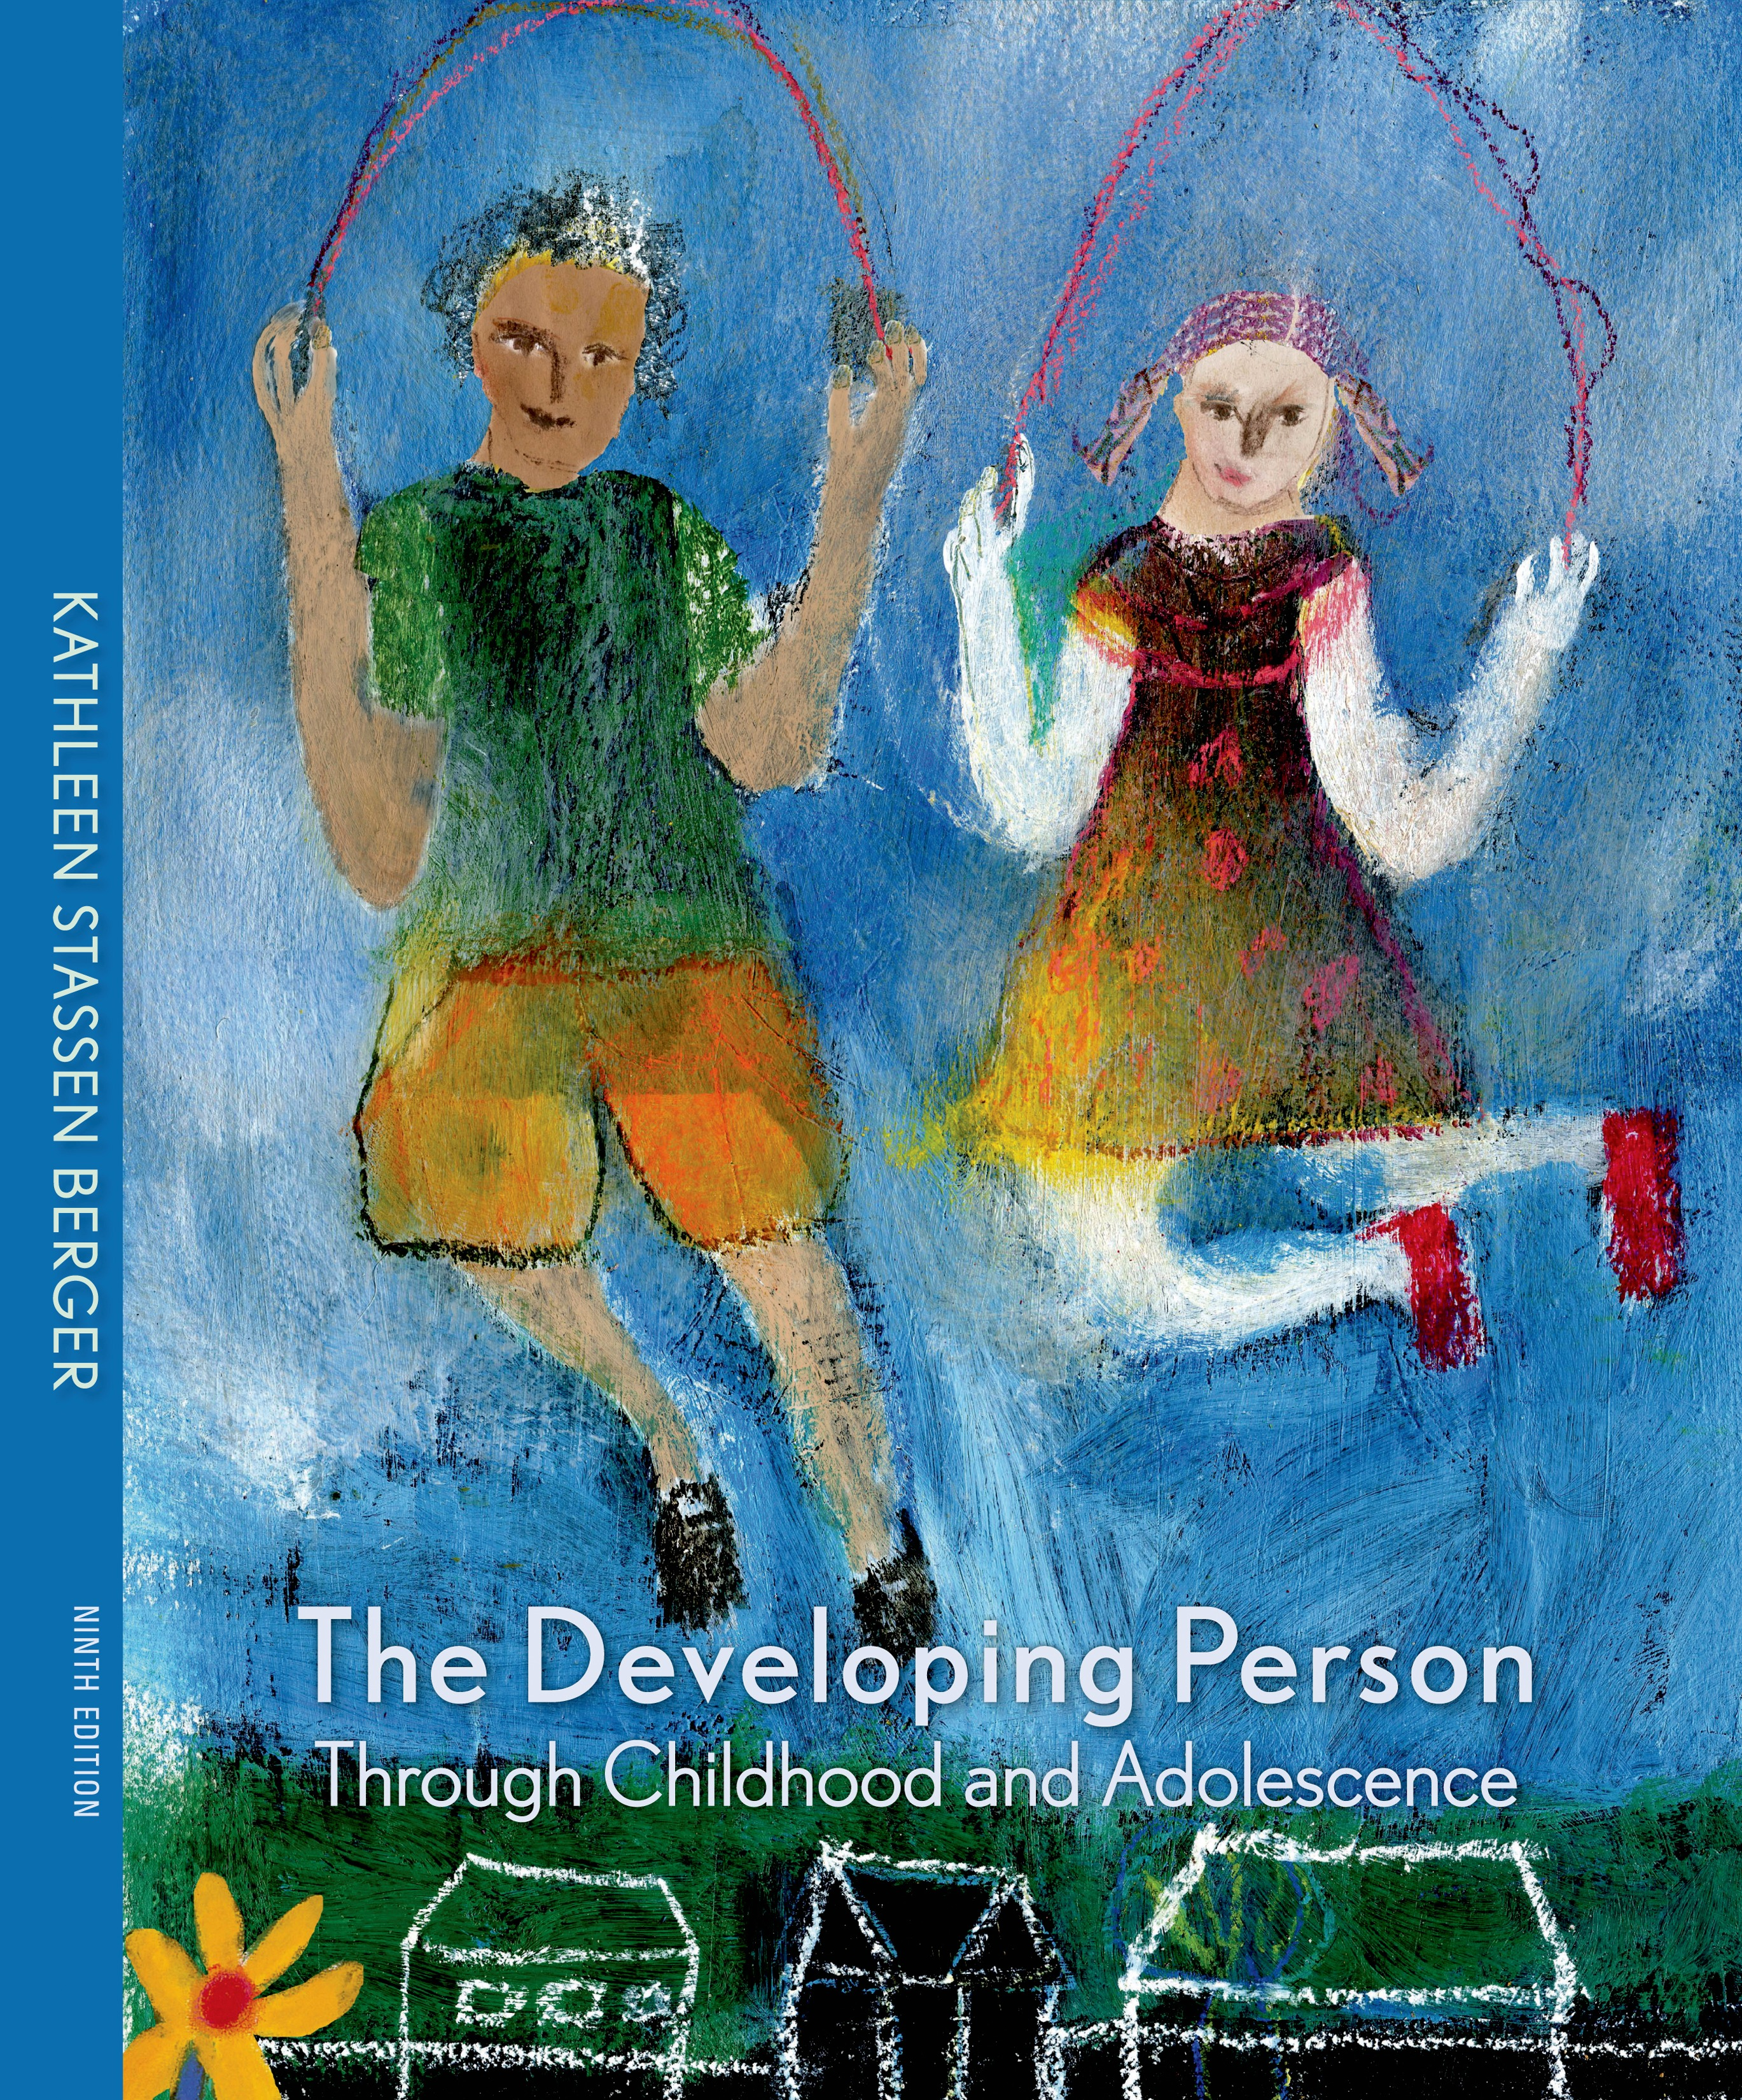 Launchpad For Berger S Developing Person Through Childhood